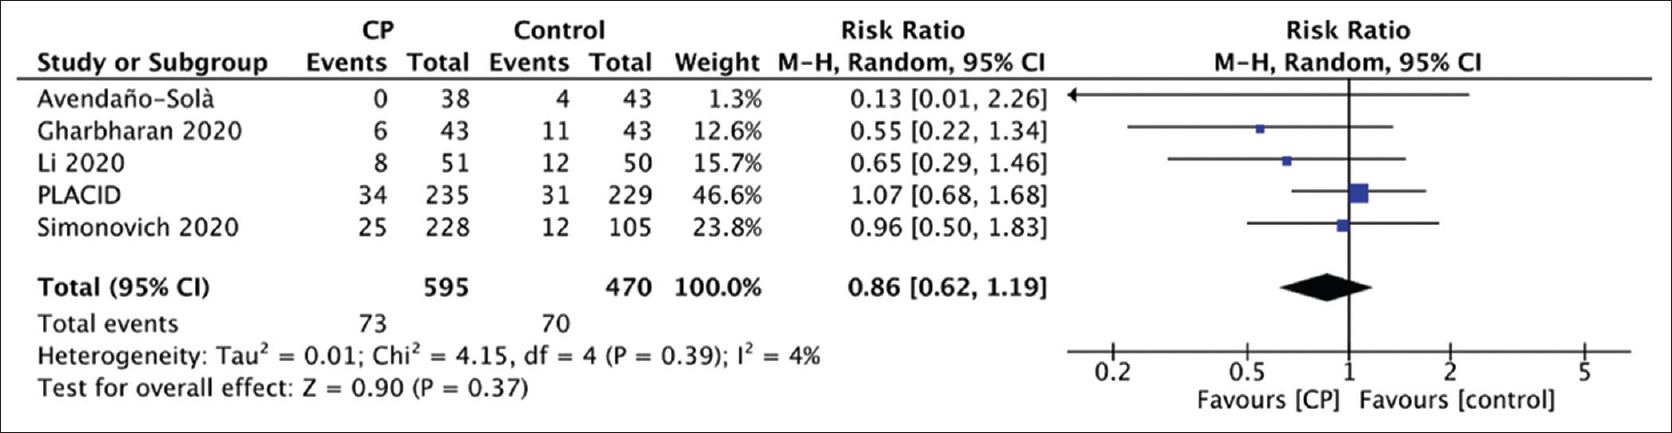 Figure 1: Pooled estimates of mortality outcome across five randomized control trials on convalescent plasma use in hospitalized COVID-19 adults using the Mantle–Haenszel Random-effects model. CP: Convalescent plasma, CI: Confidence interval